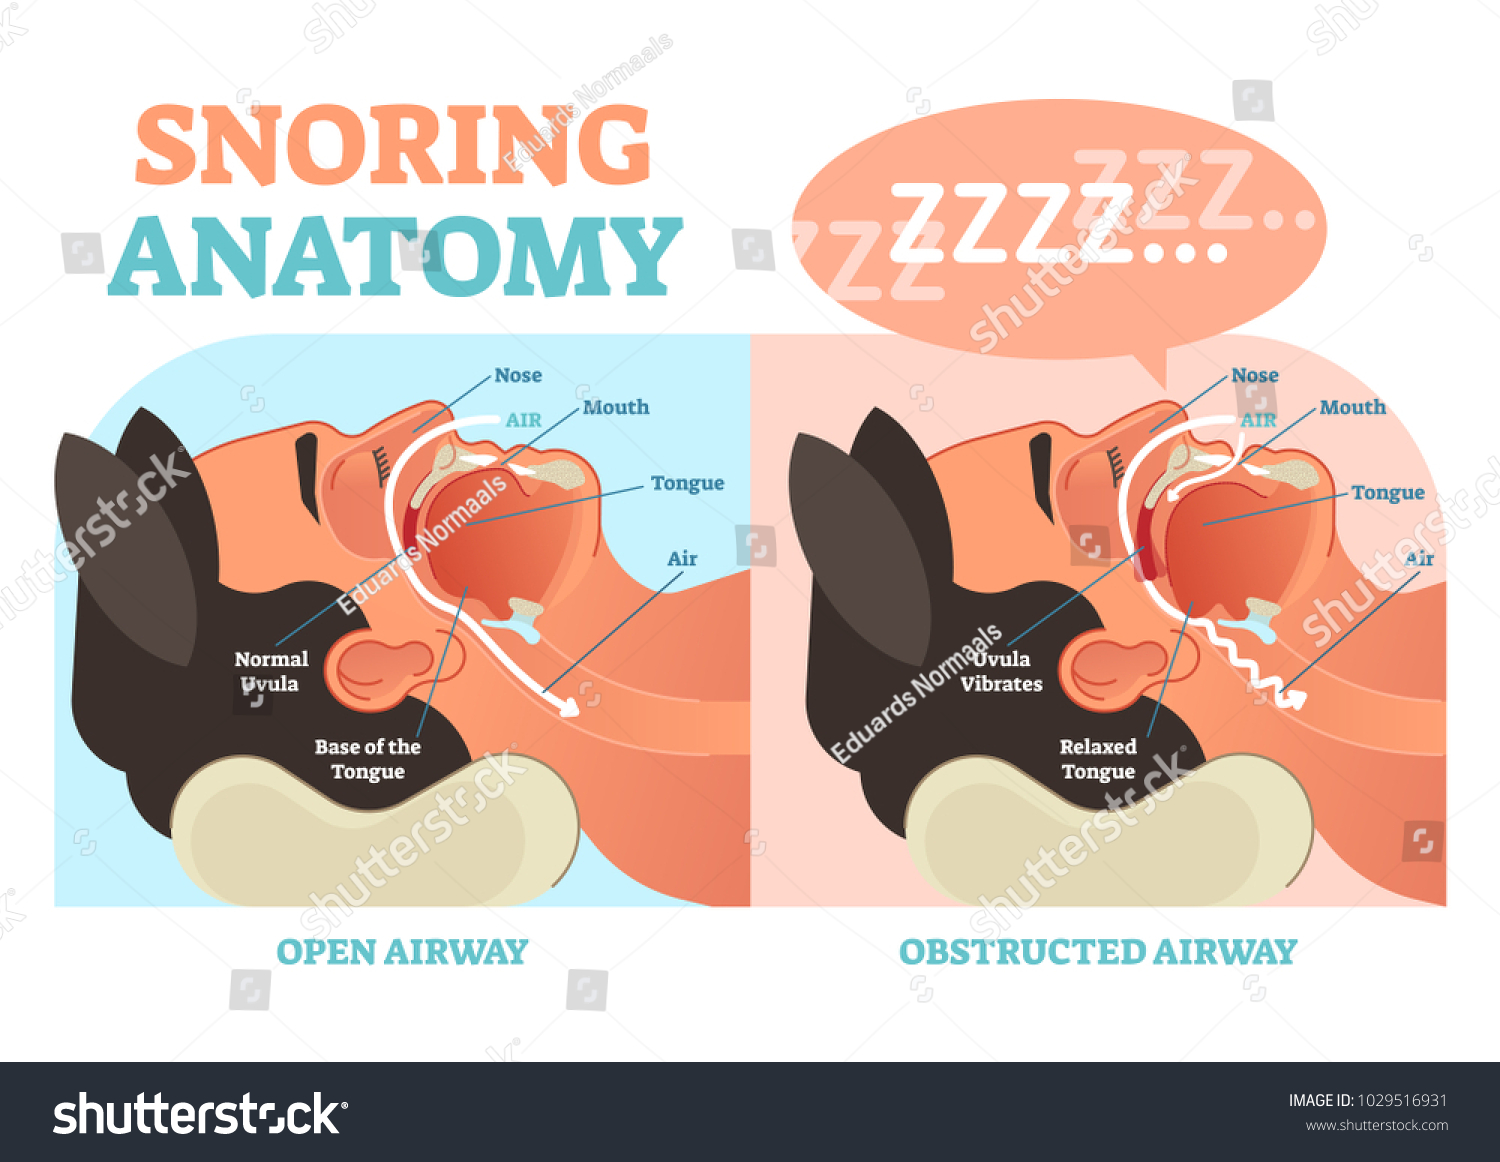 hight resolution of snoring anatomy medical vector diagram with nose mouth tongue and air passage